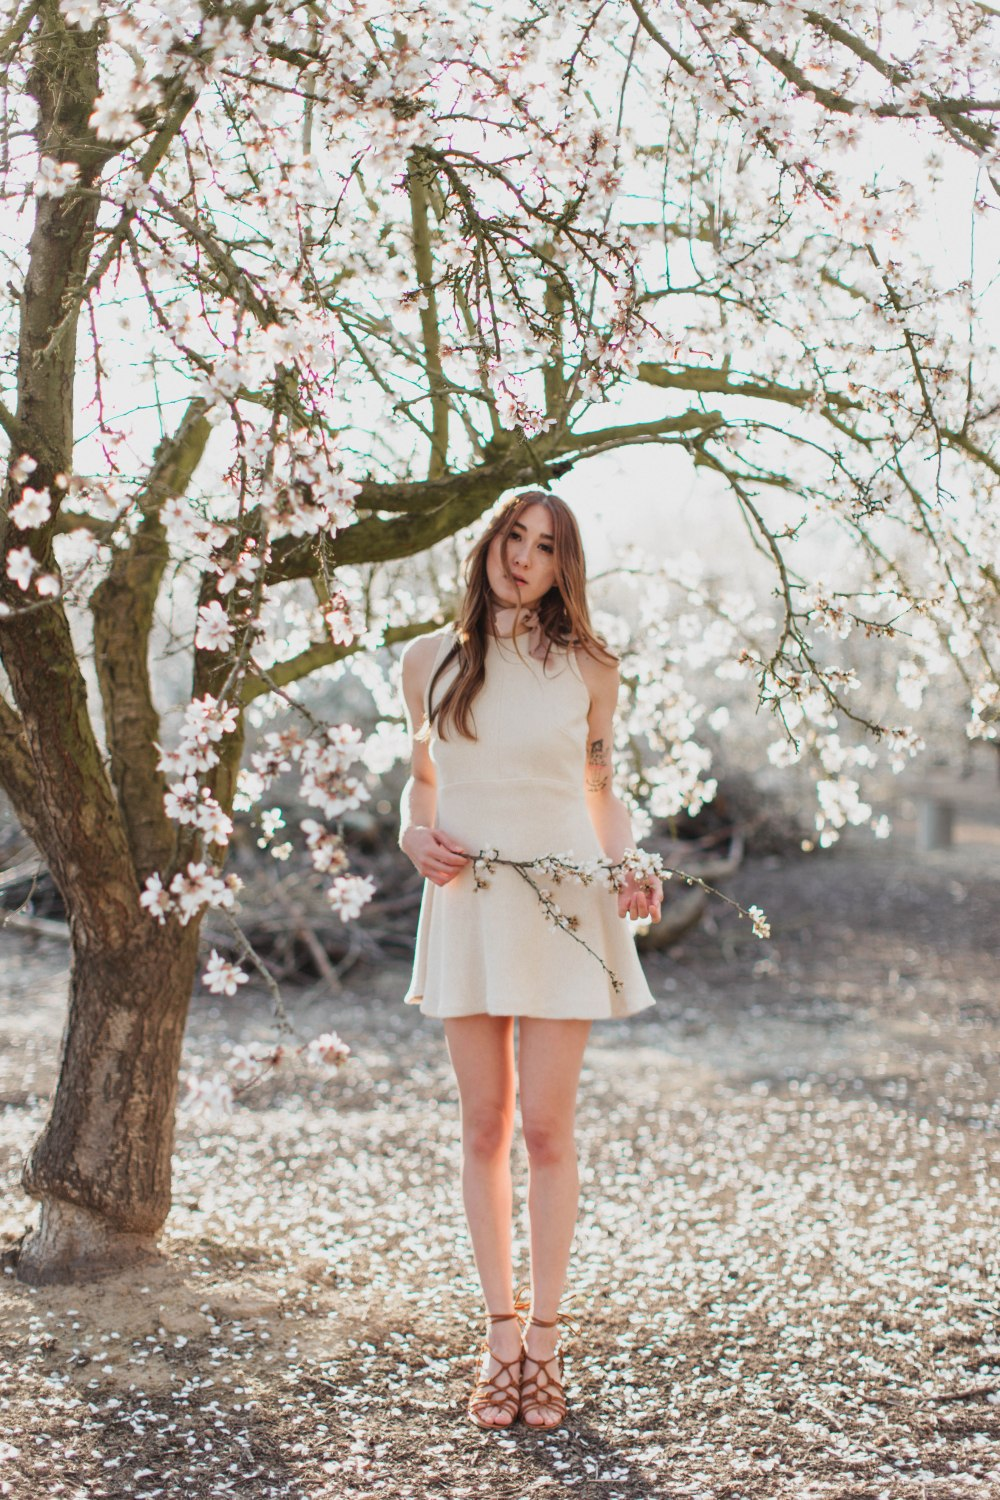 Alyssa-Nicole-Kayliegh-Dress-Beyond-The-Blossoms-4